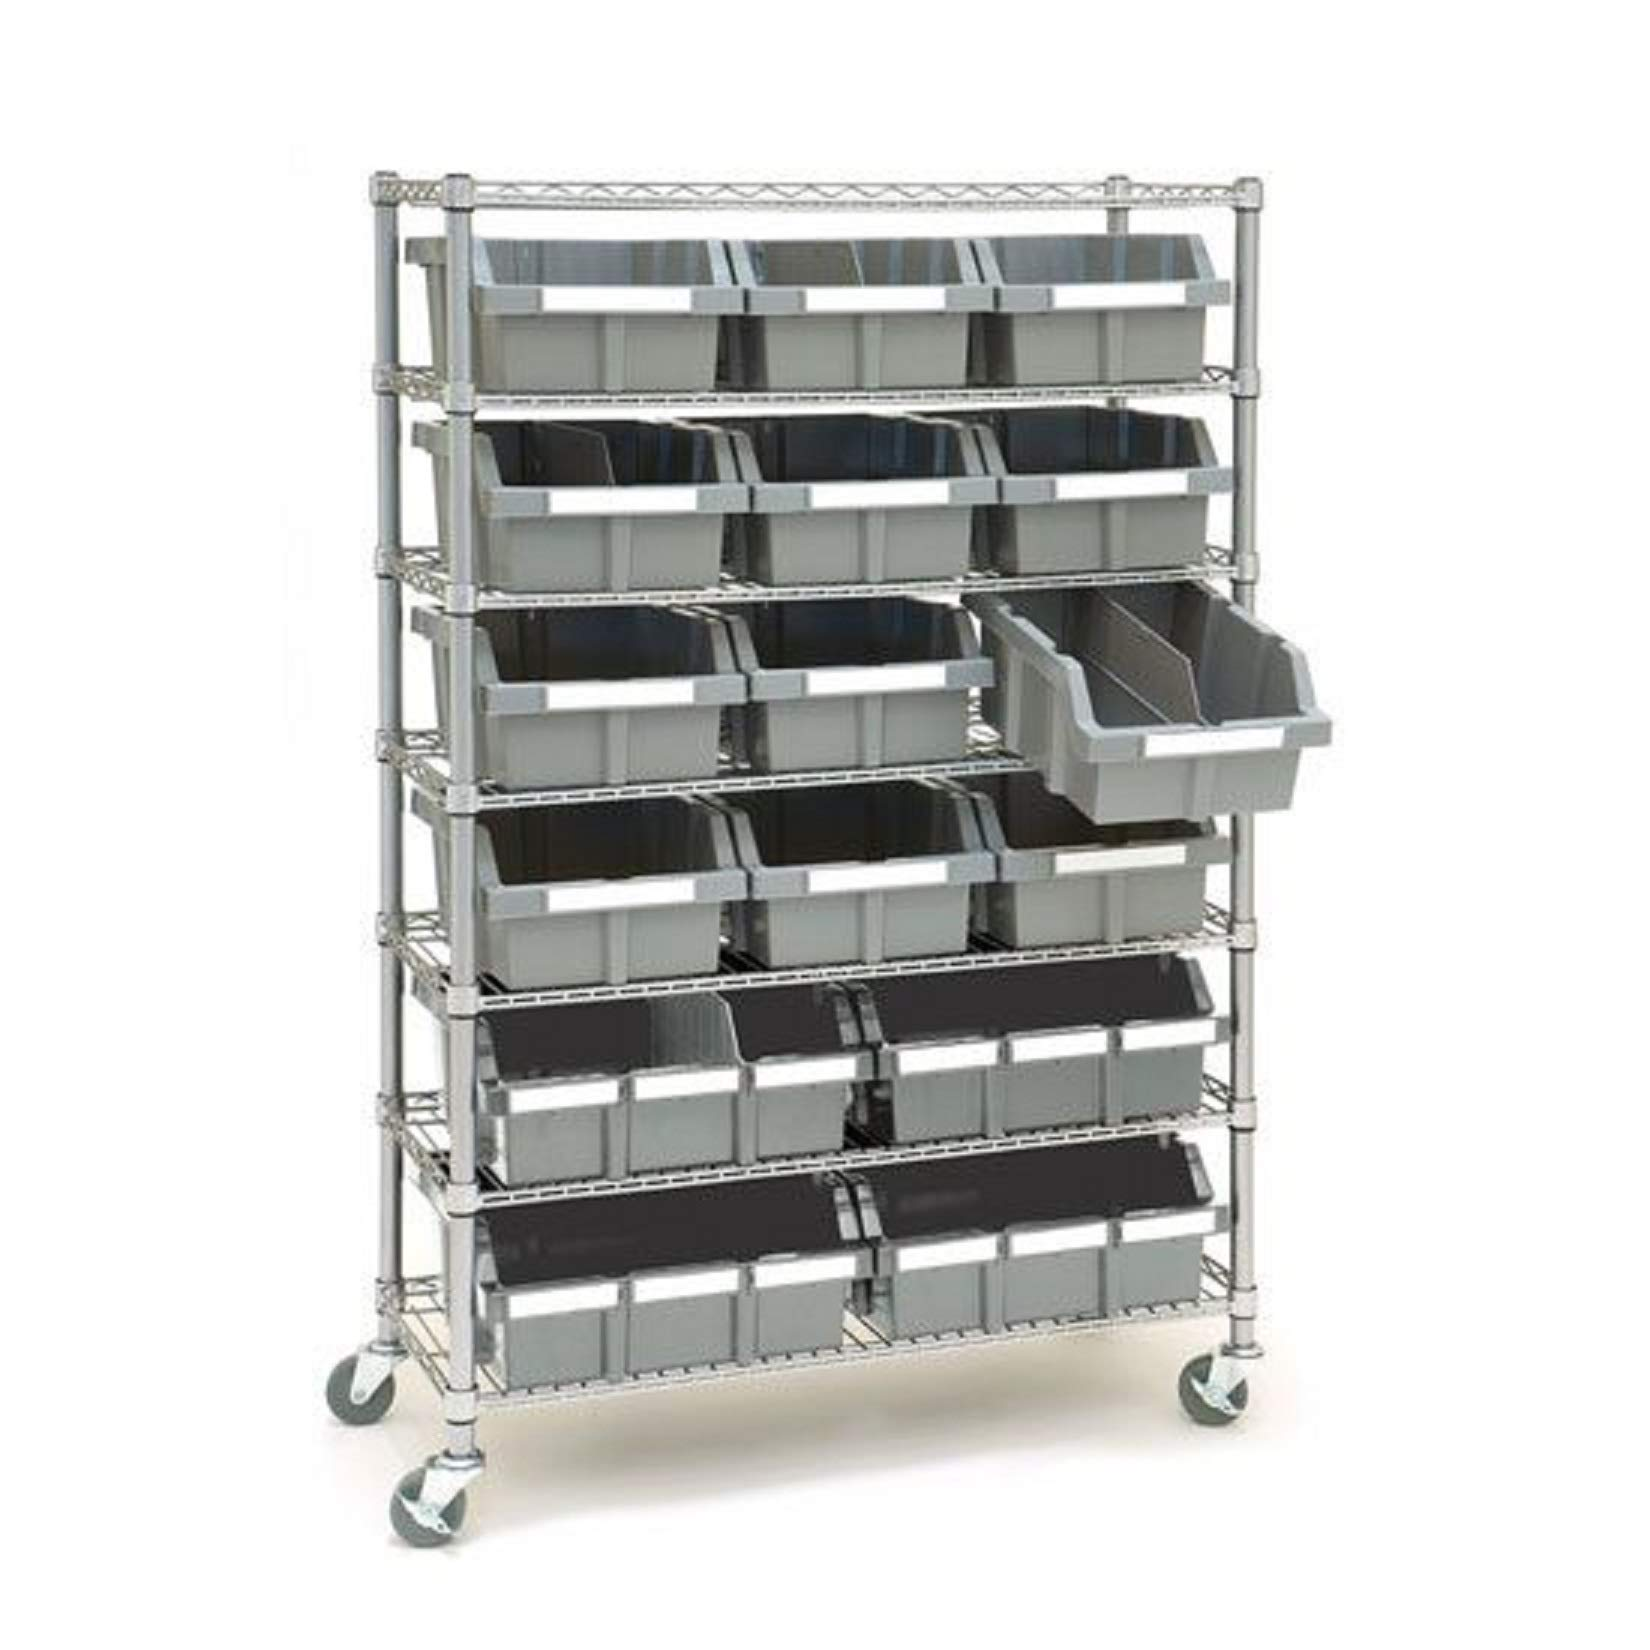 Seville Classics Commerical Grade NSF-Certified Bin Rack Storage Steel Wire Shelving System - 16 Bins - Gray